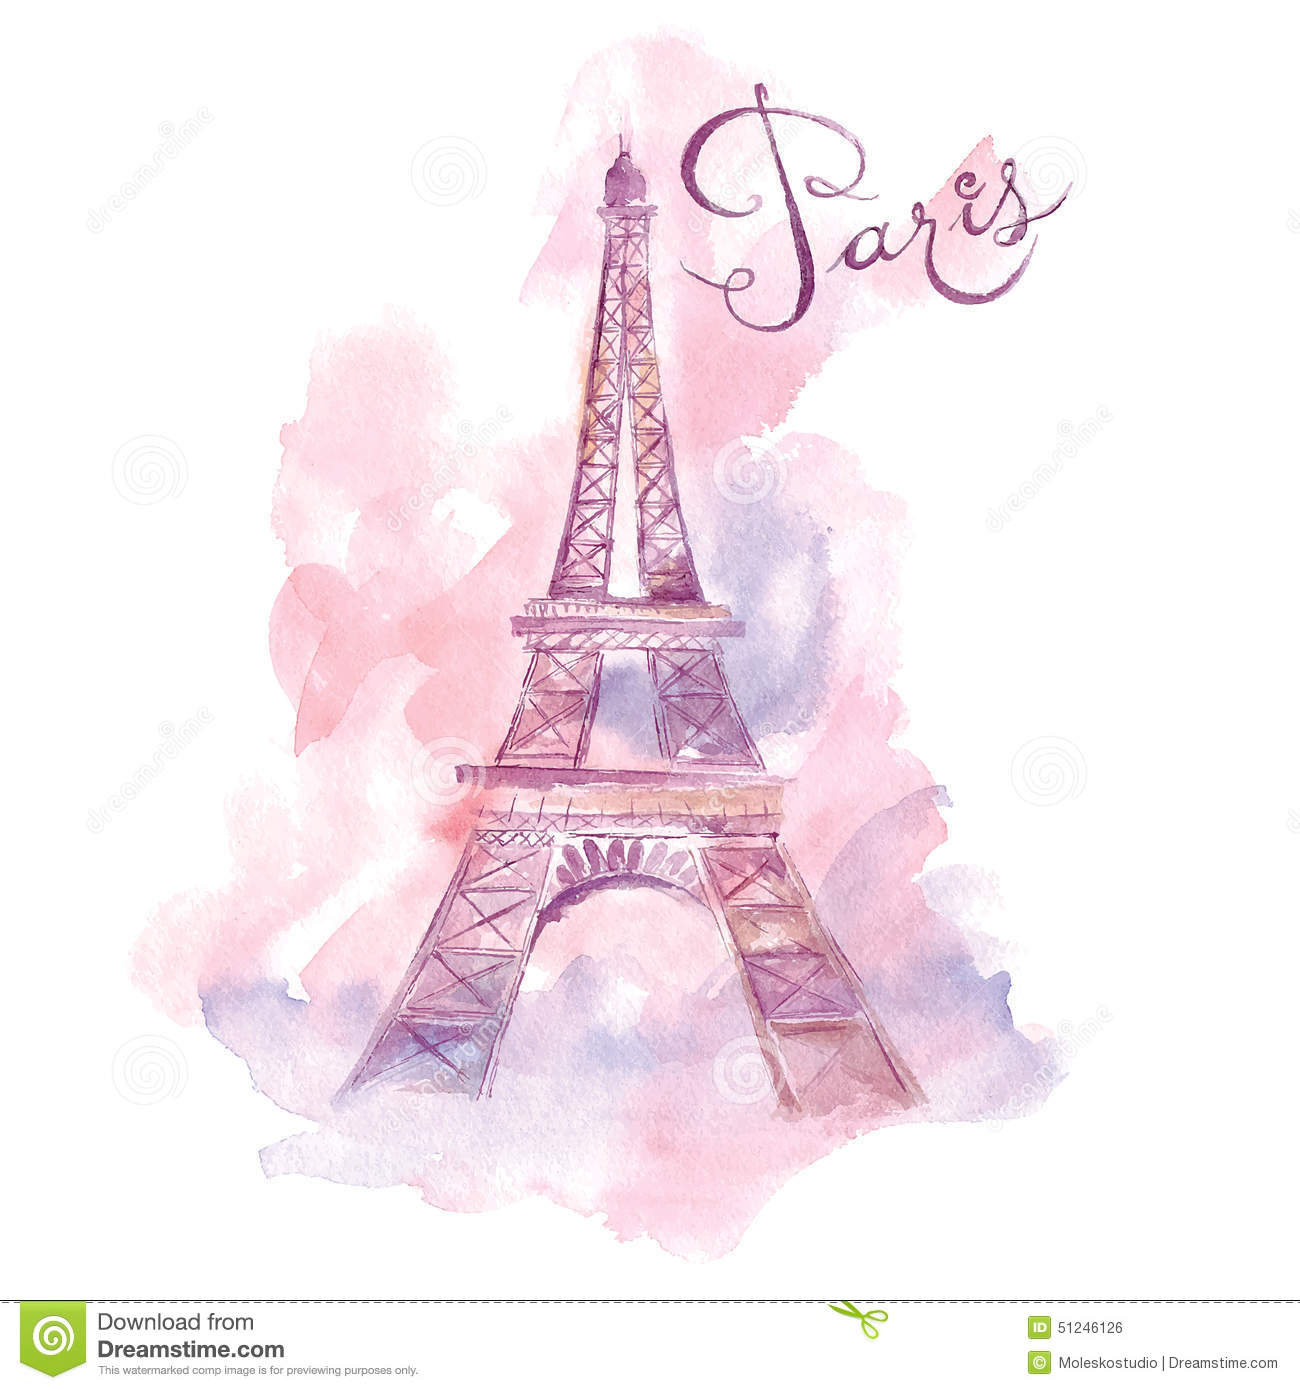 Paris Wall Mural Illustration With Eiffel Tower Stock Vector Illustration